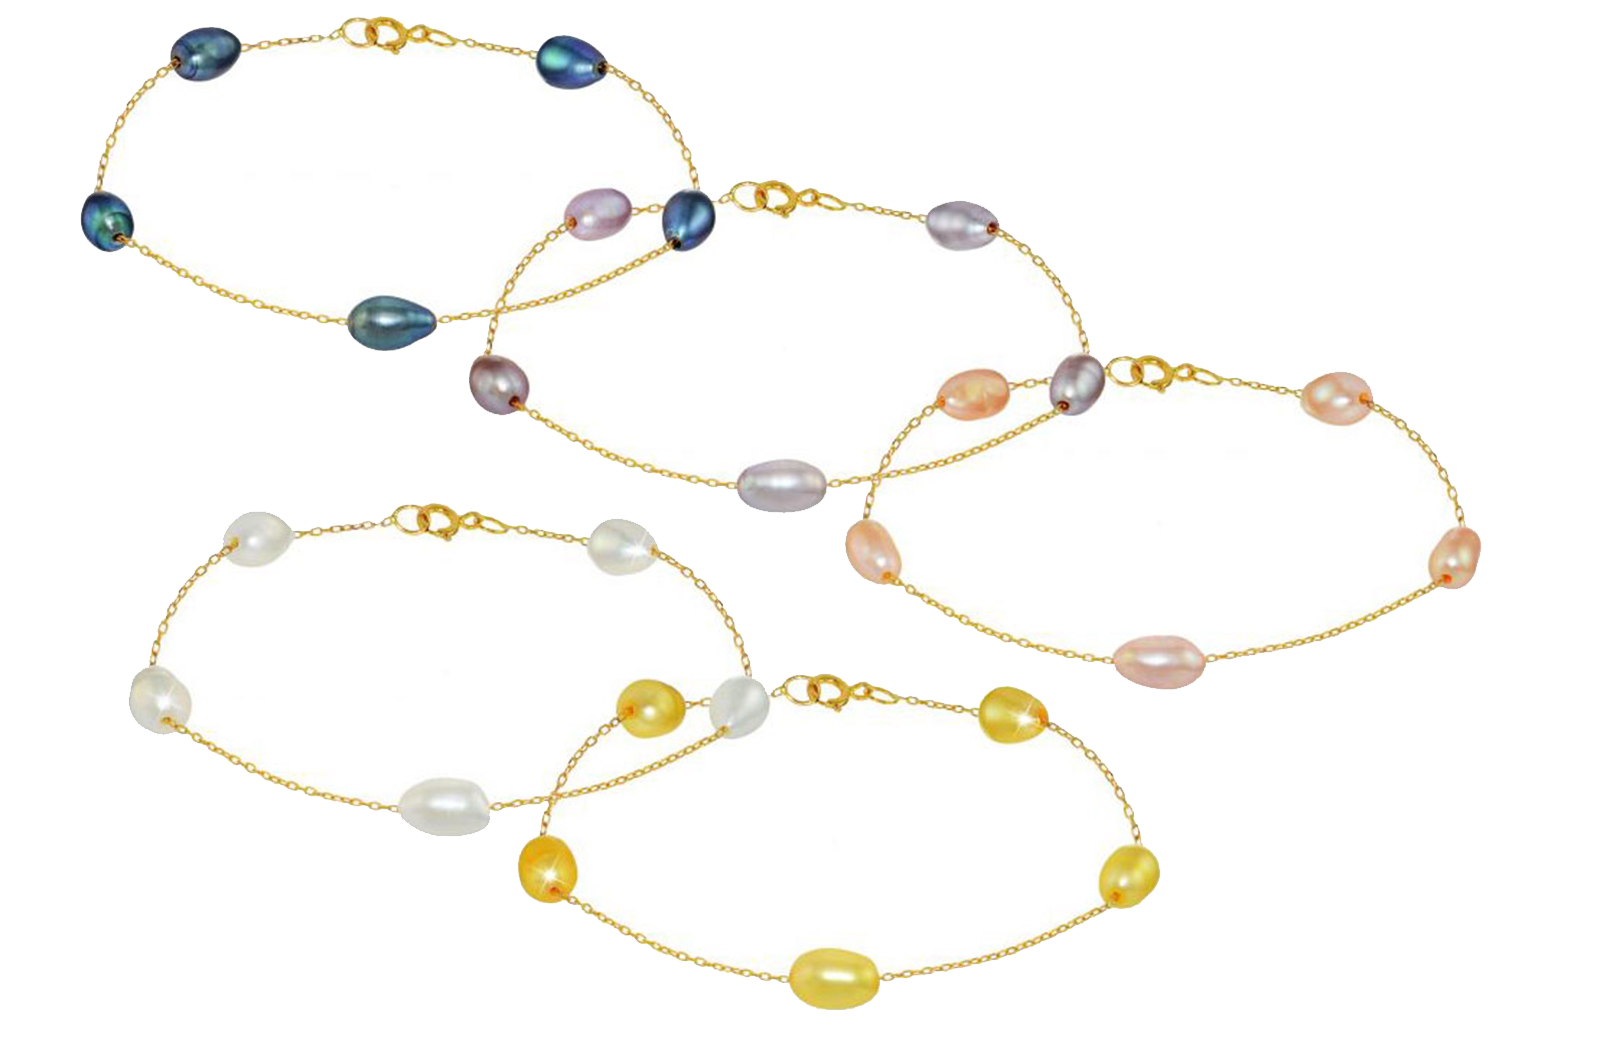 Vera Perla 18K Gold Multi Color Pearl Bracelet - 5 pcs.